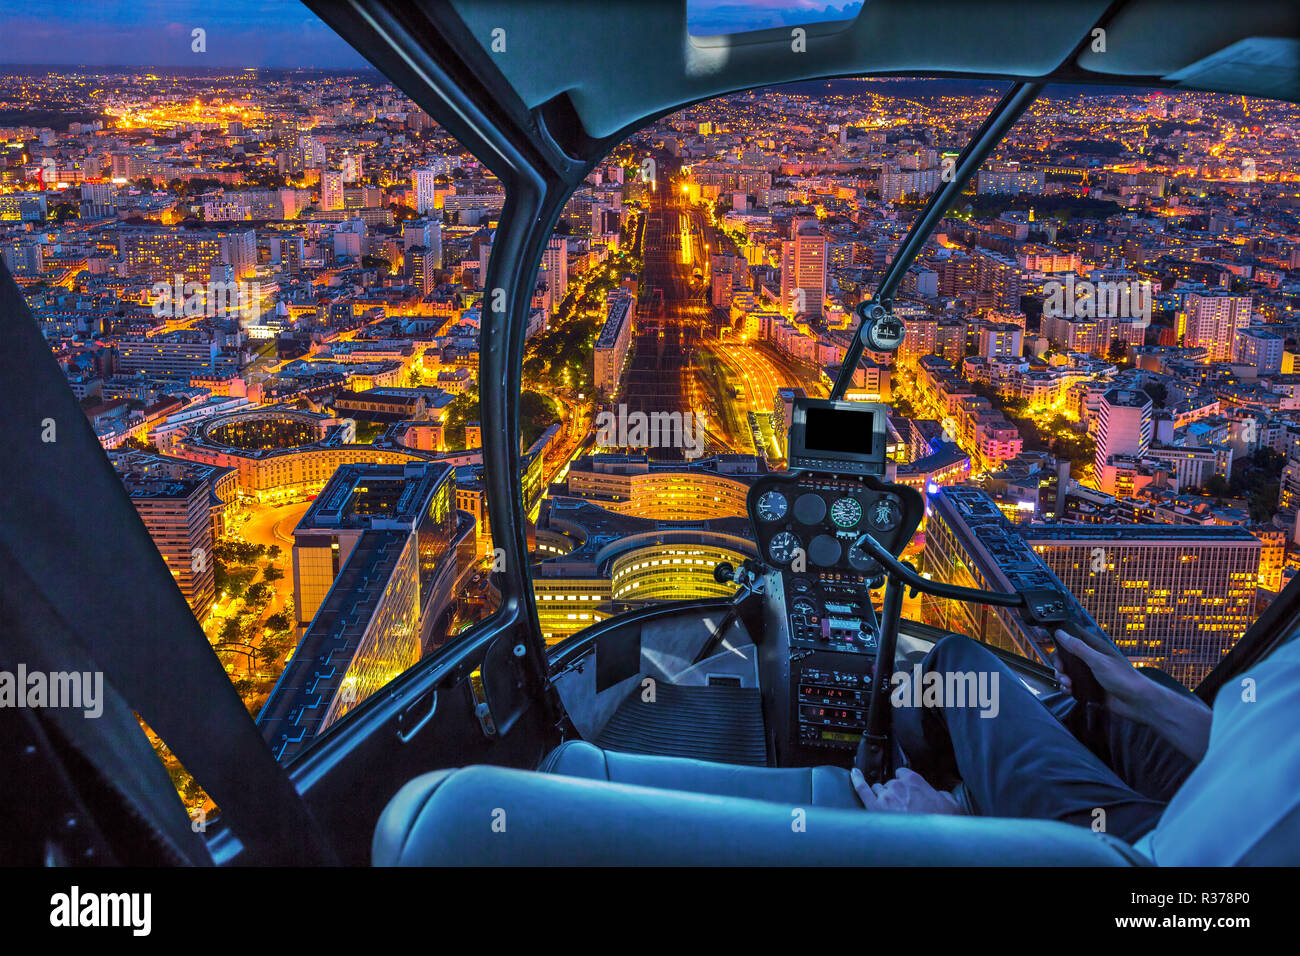 Helicopter cockpit flying on Gare Montparnasse in Paris, French capital, Europe. Scenic flight above Paris urban cityscape. Parisian style architecture of France in Europe. Night scene. Stock Photo